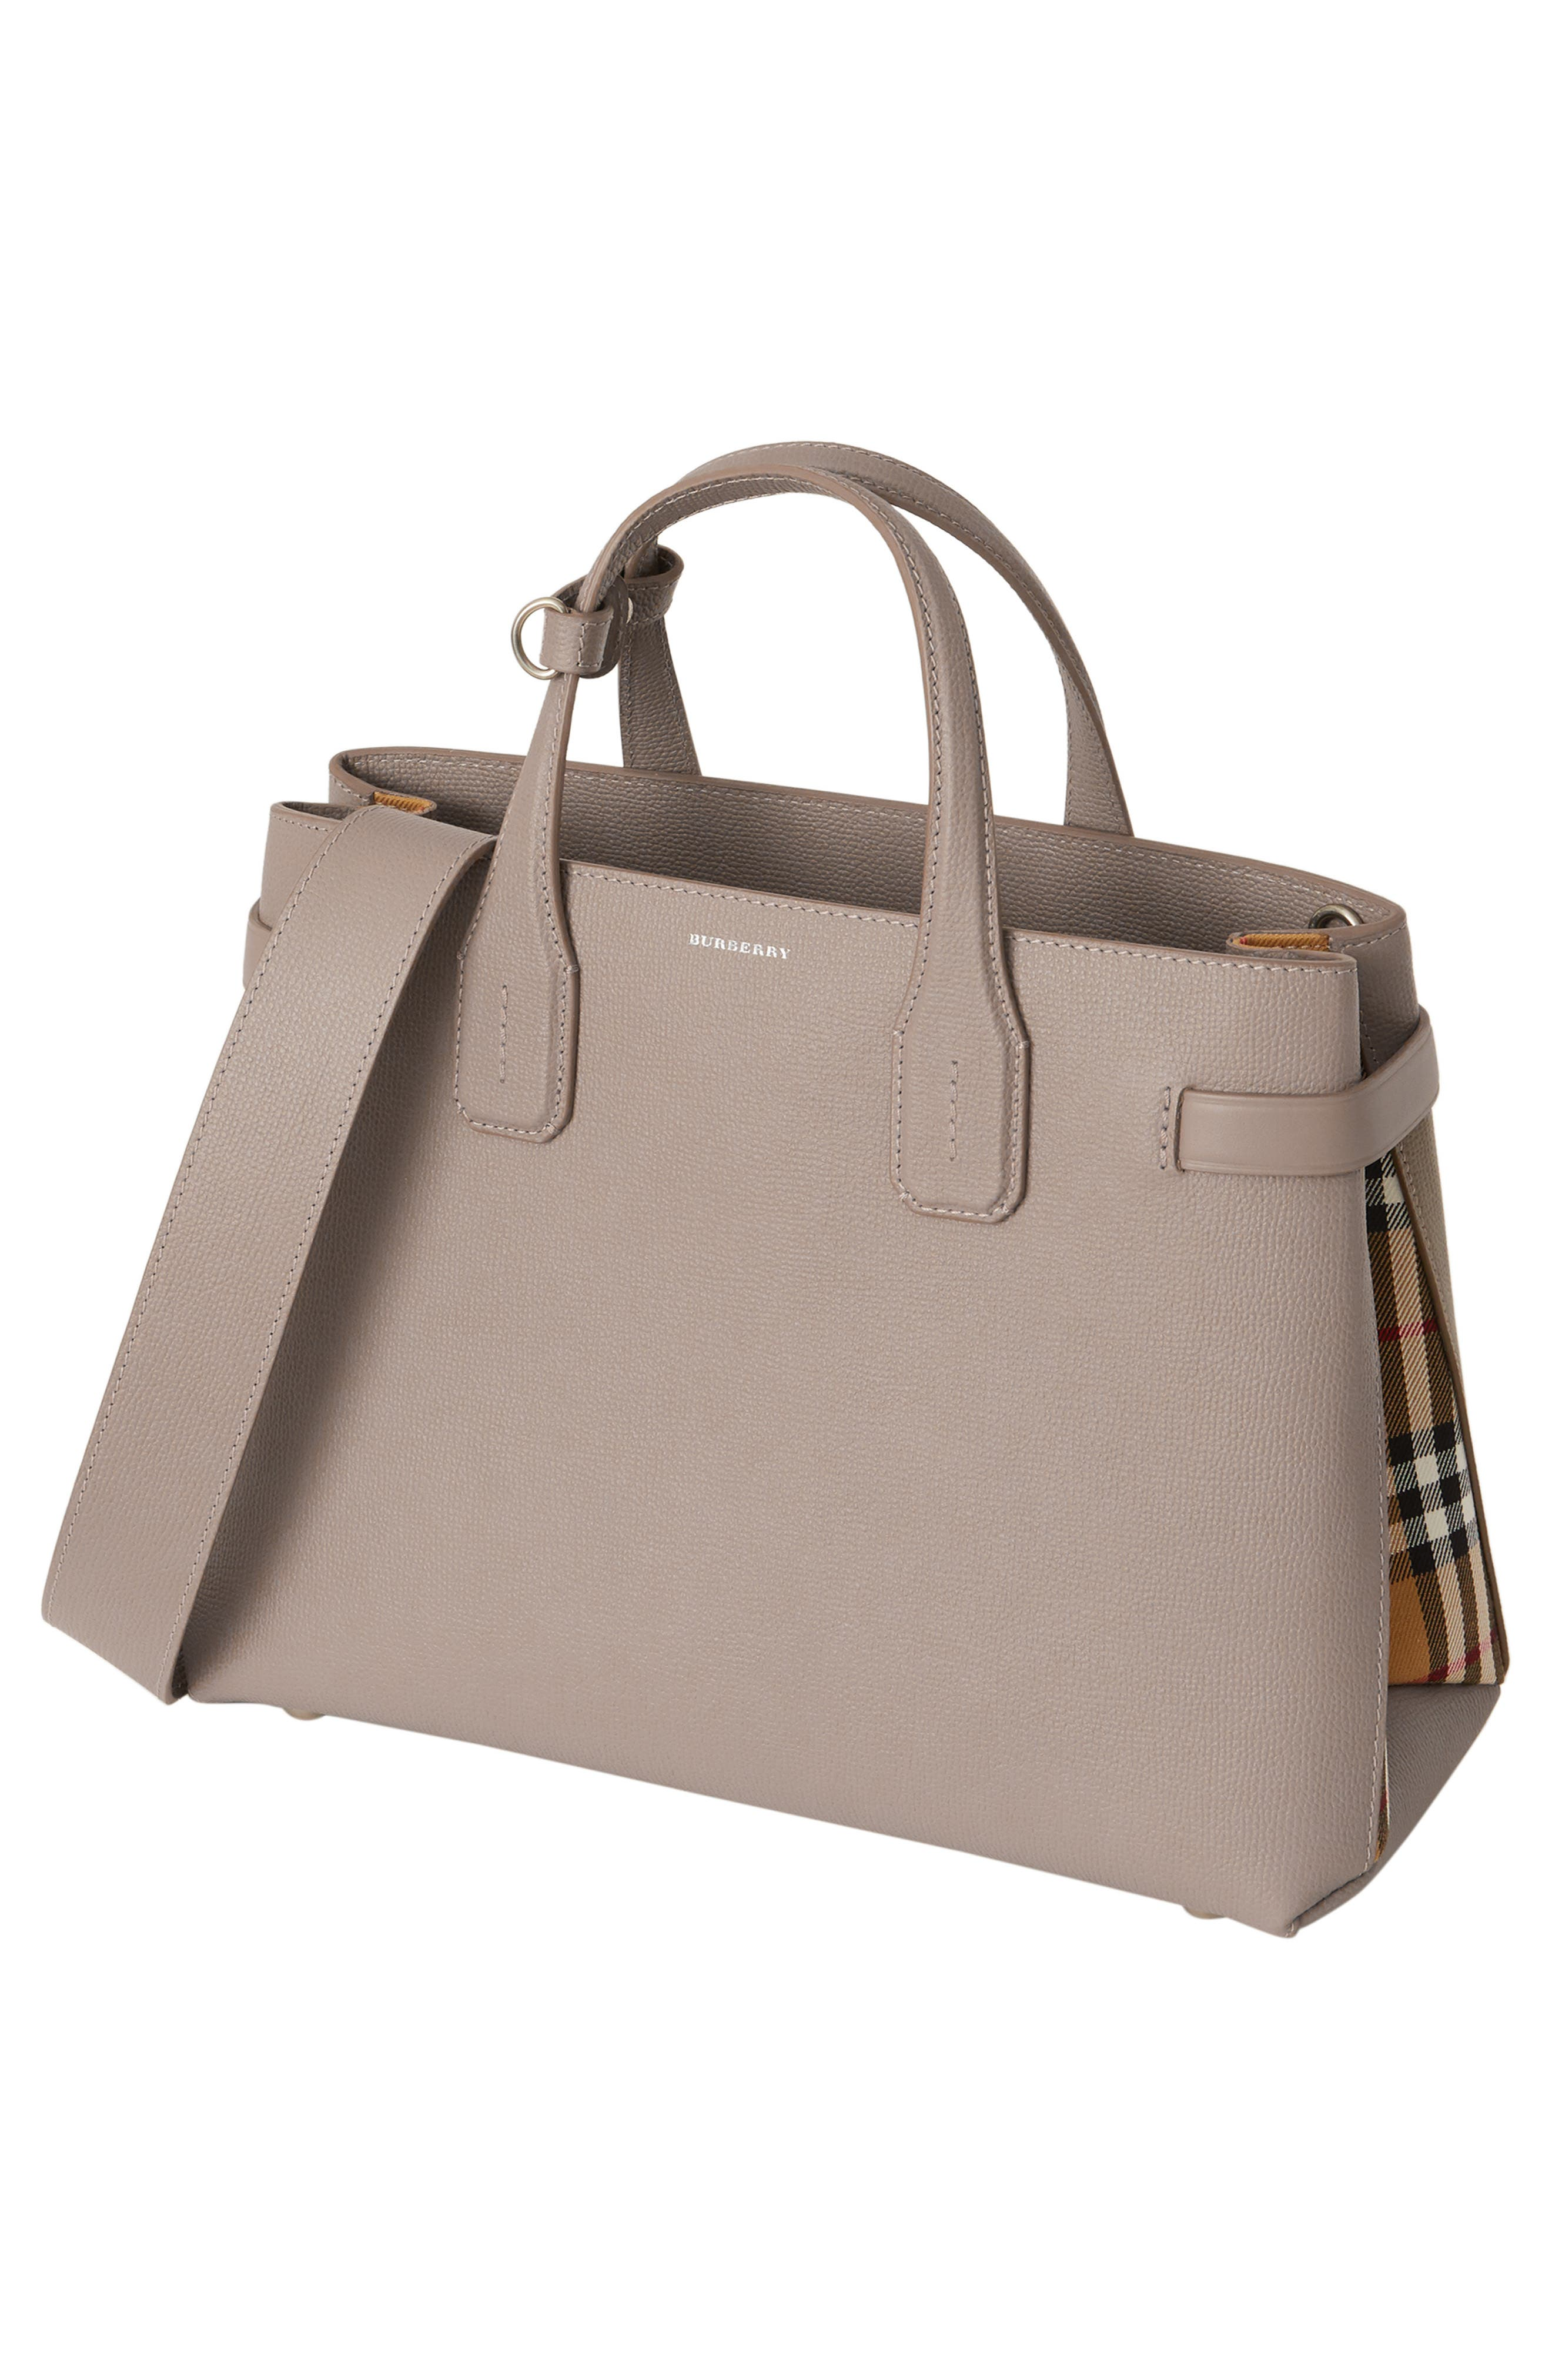 Medium Banner Leather Tote,                             Alternate thumbnail 8, color,                             TAUPE BROWN